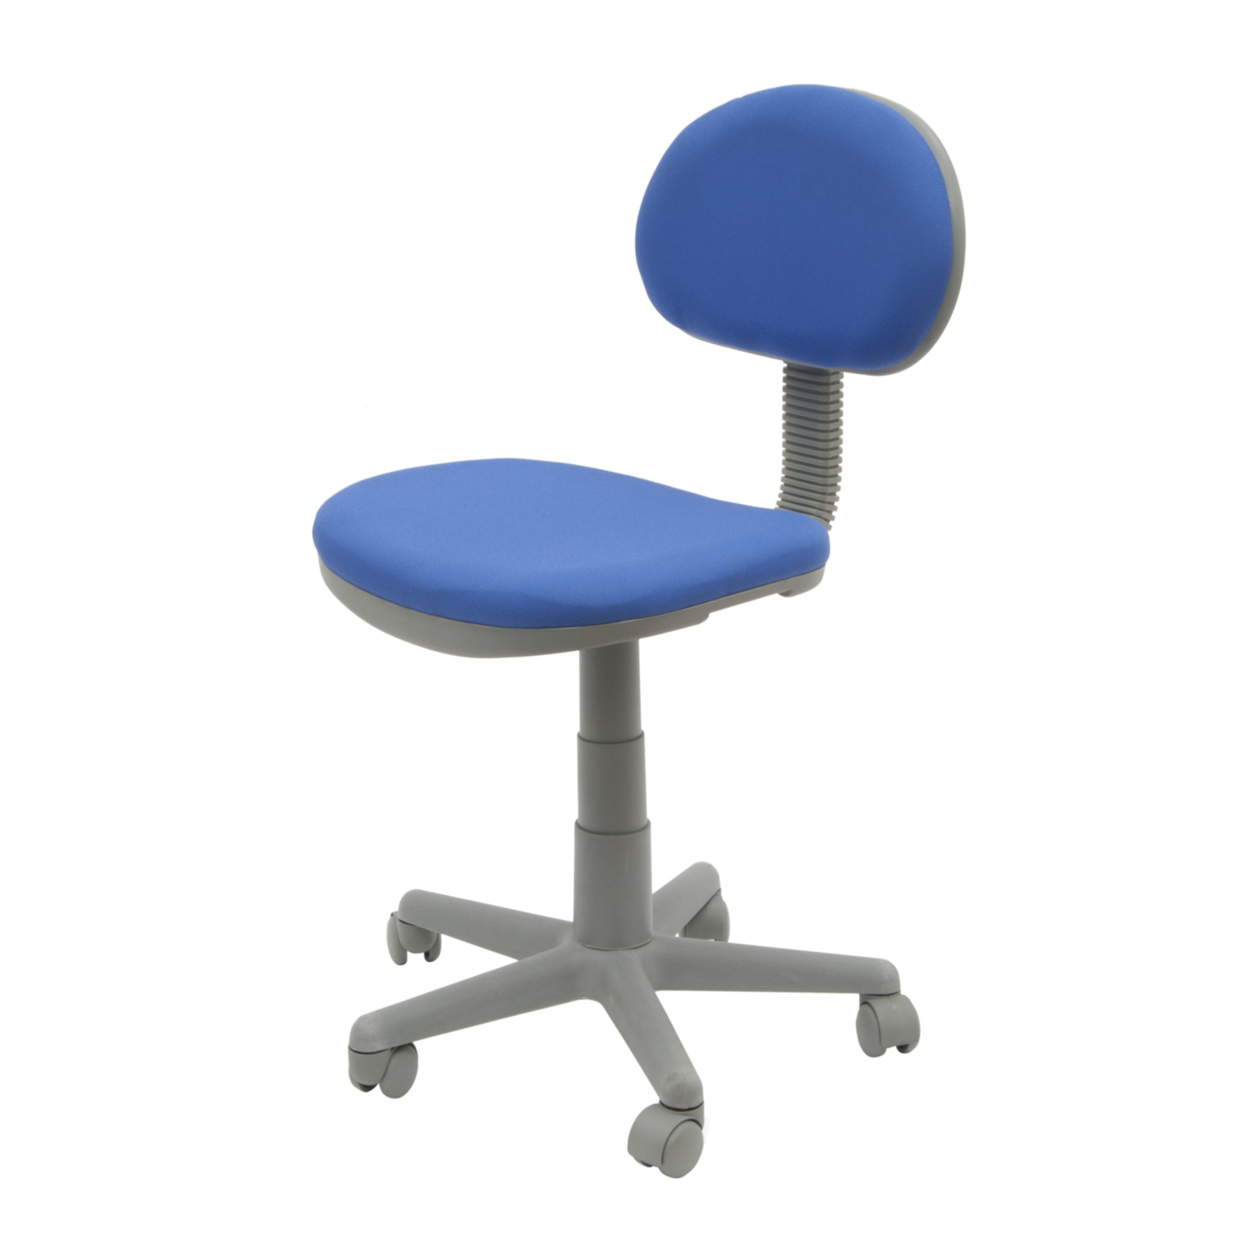 Offex Home Office Deluxe Task Chair - Blue/Gray